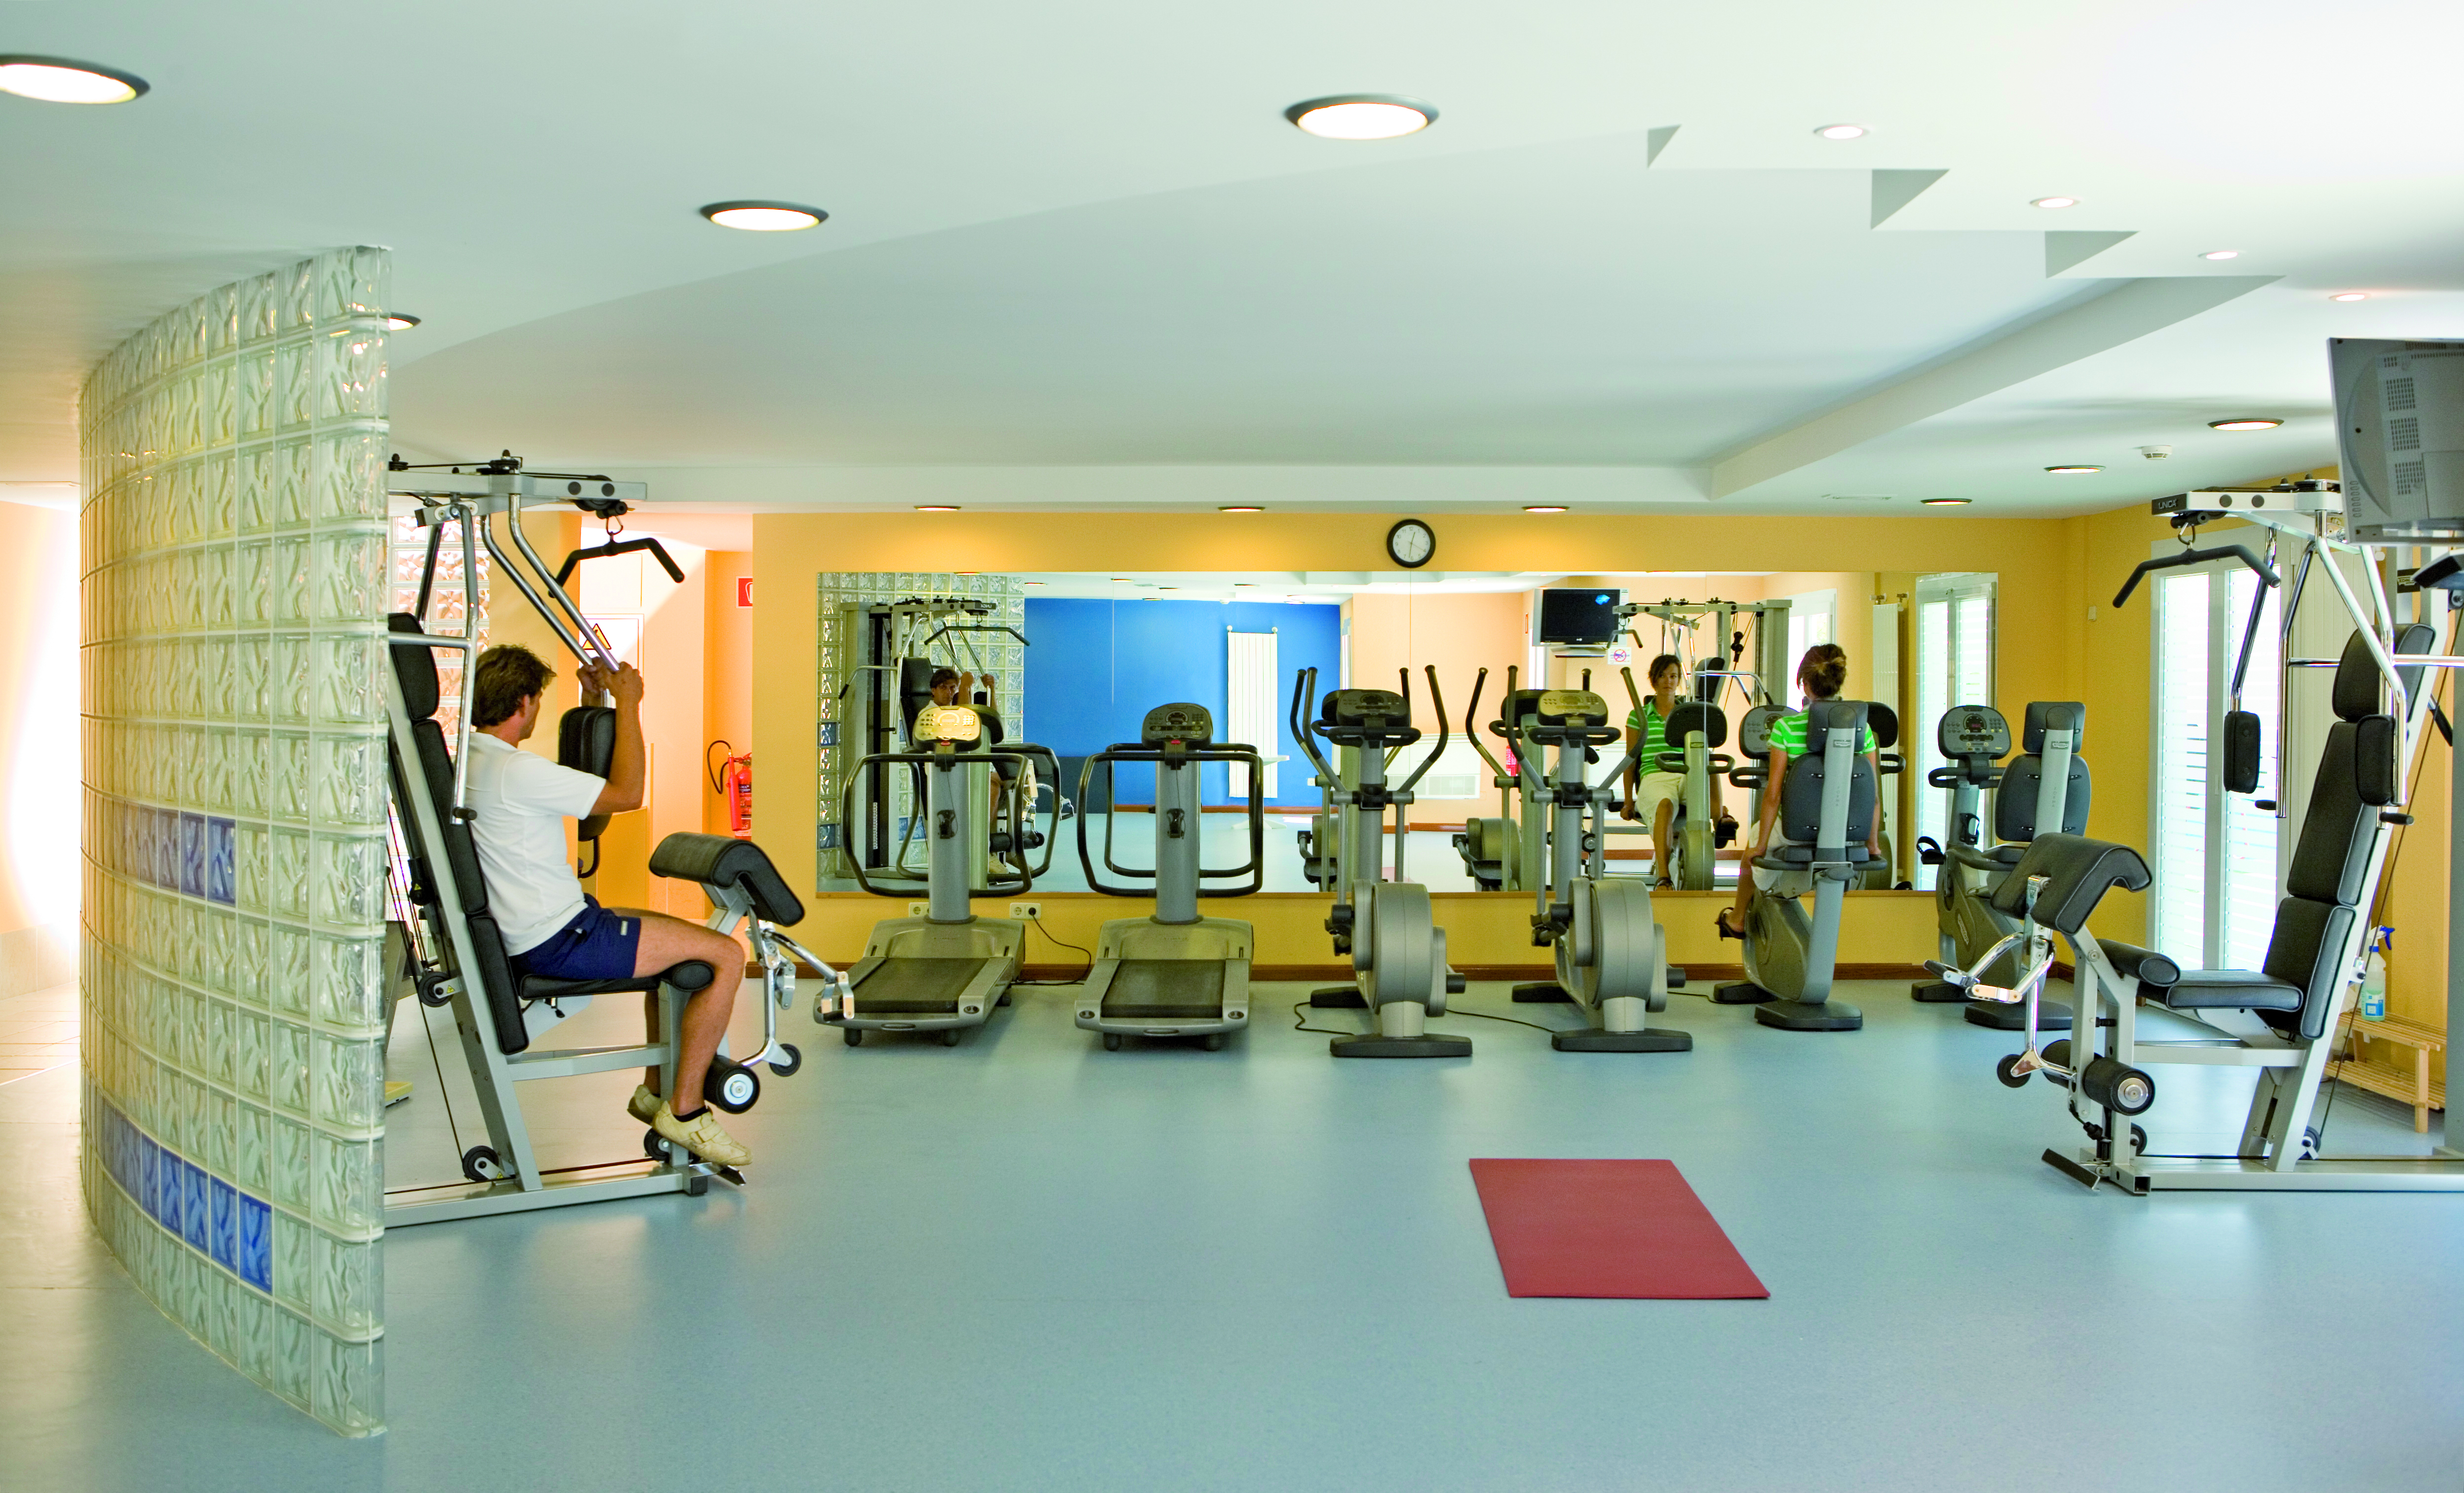 6 Universal Hotel Lido Park Fitness